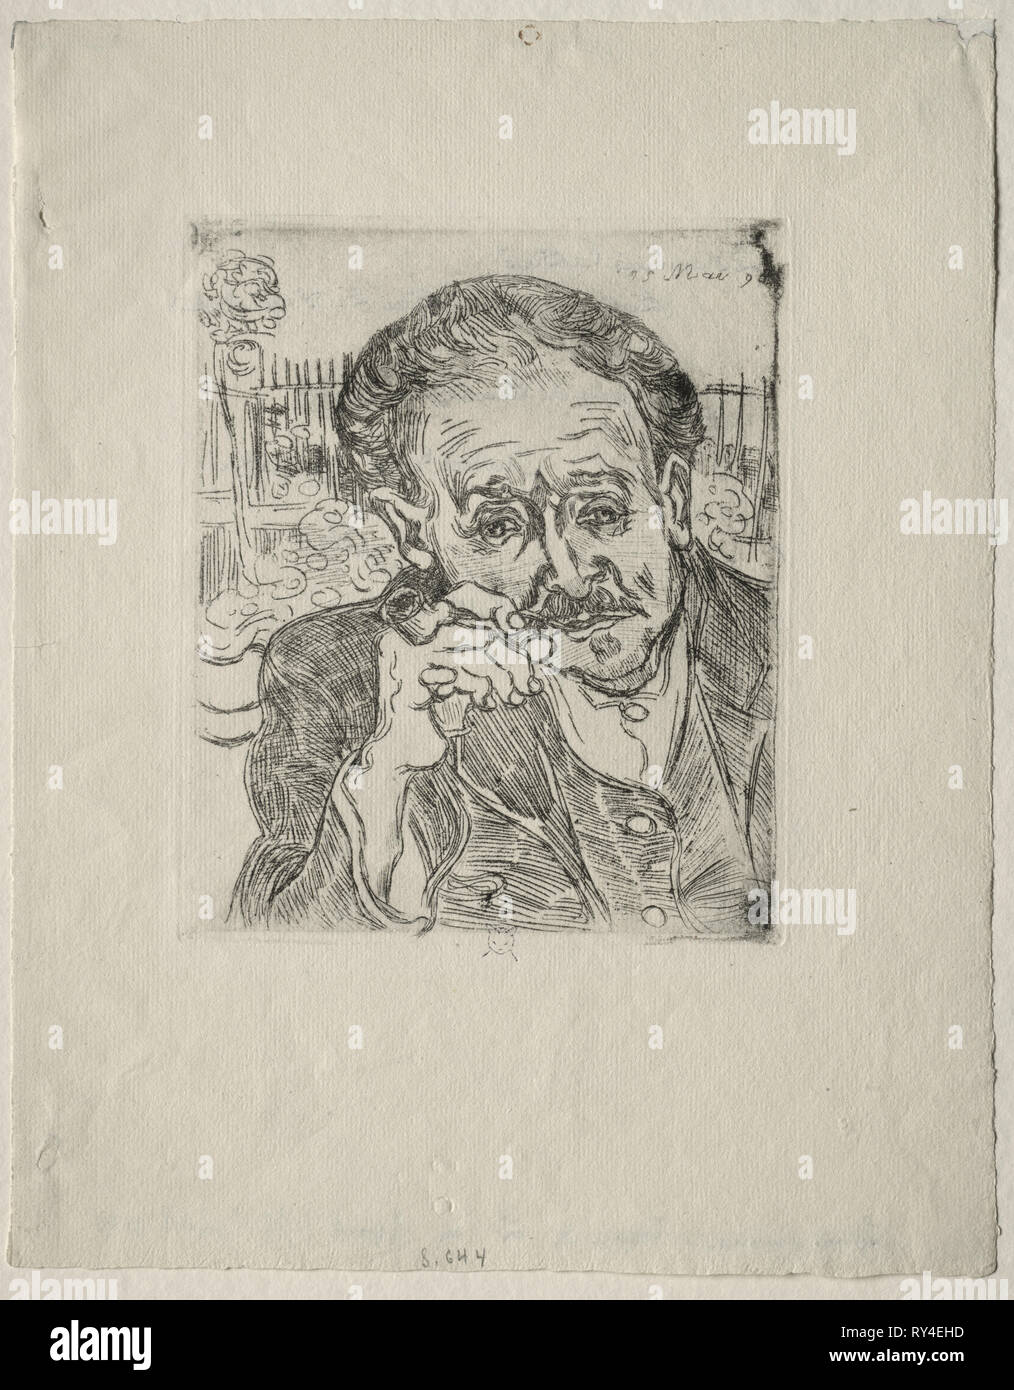 Dr. Gachet, 1890. Vincent van Gogh (Dutch, 1853-1890). Etching and drypoint, enhanced with black ink on laid paper; 18.1 x 15.2 cm (7 1/8 x 6 in - Stock Image